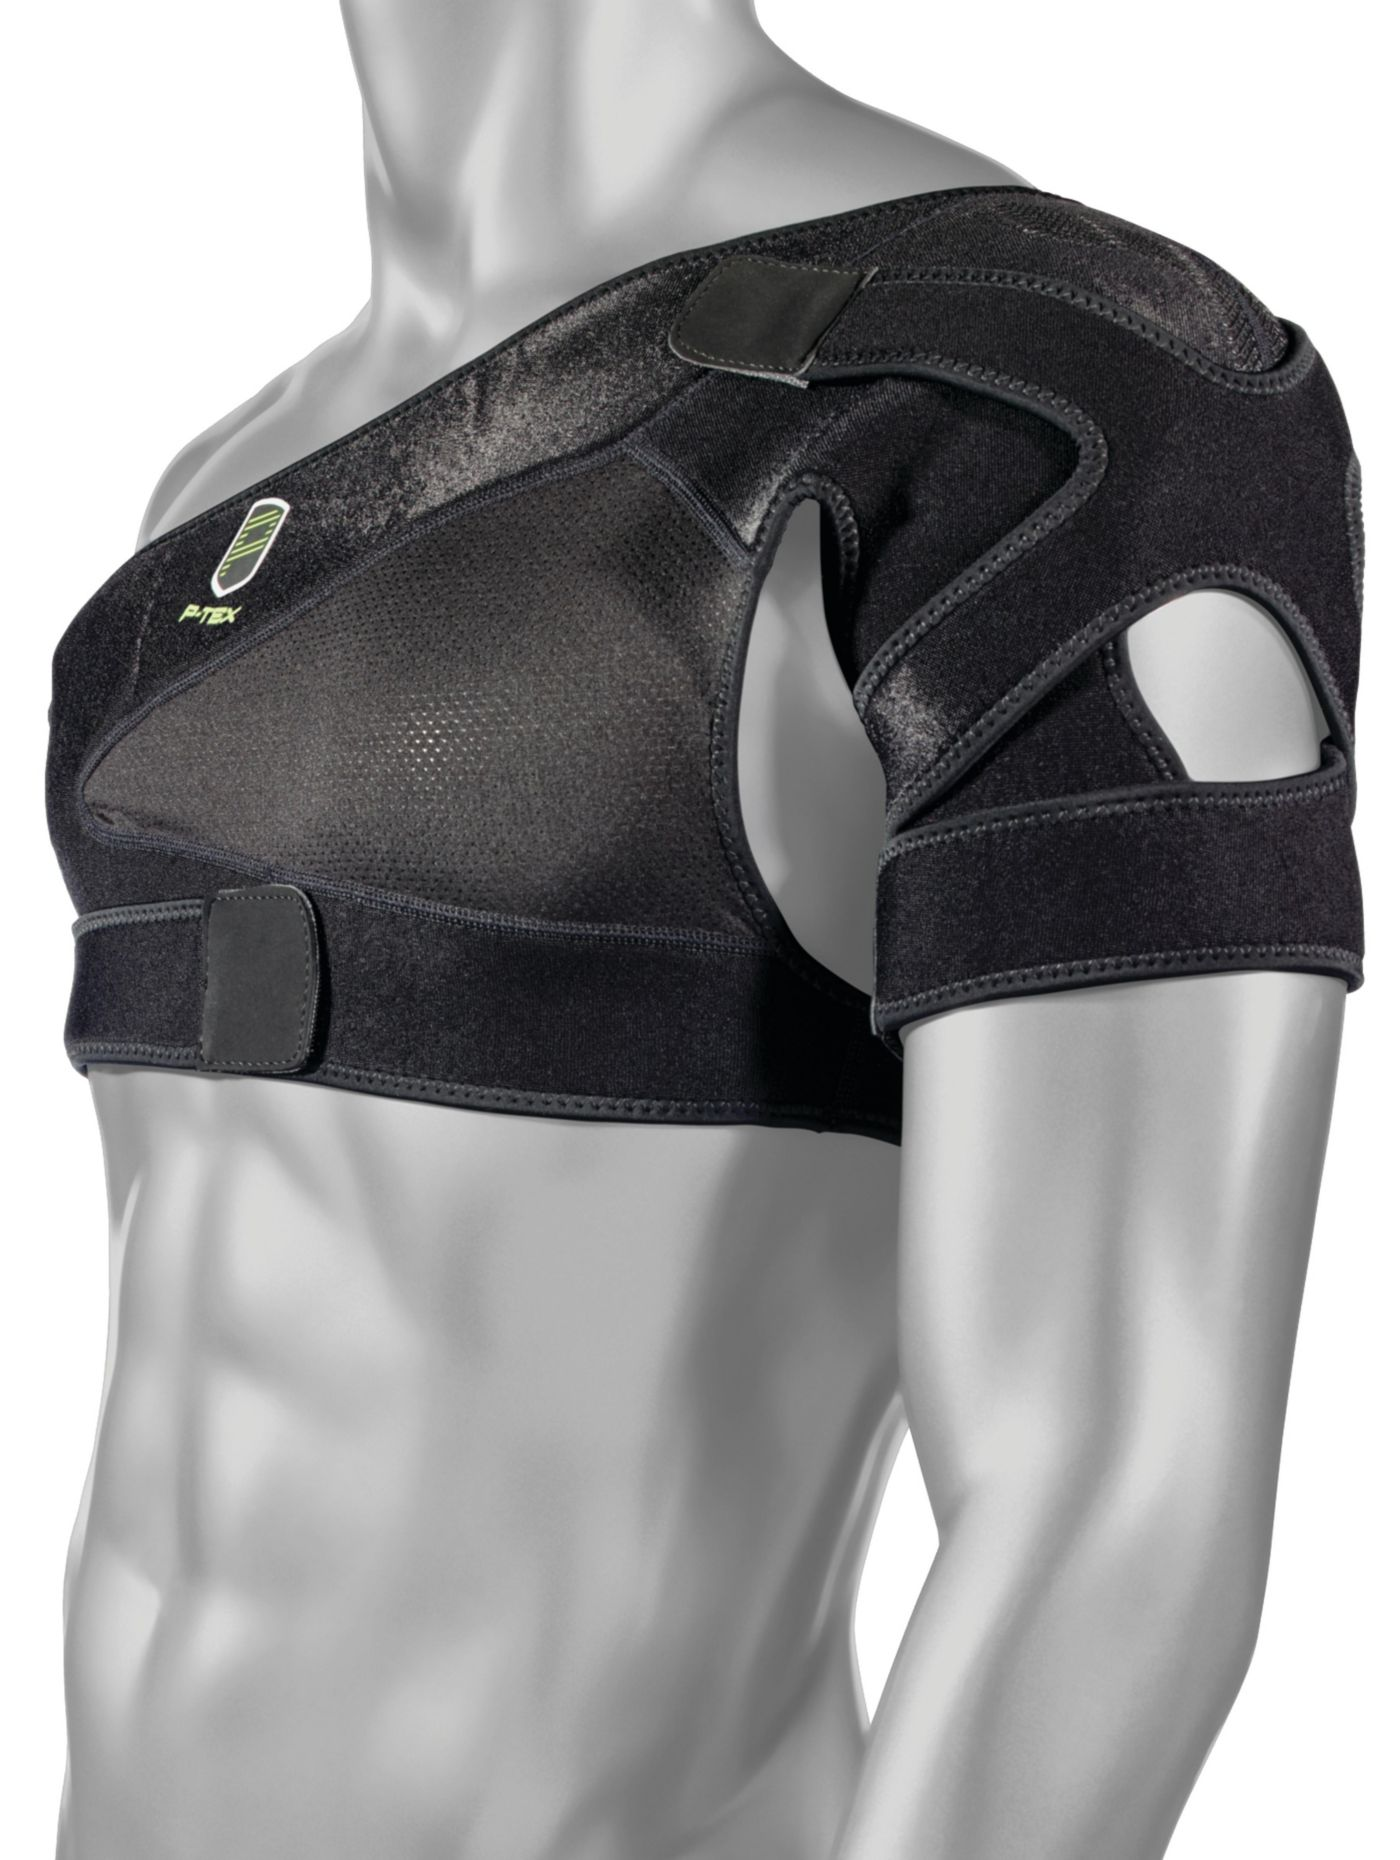 P-TEX Shoulder Support With Multi-Strap Stability System